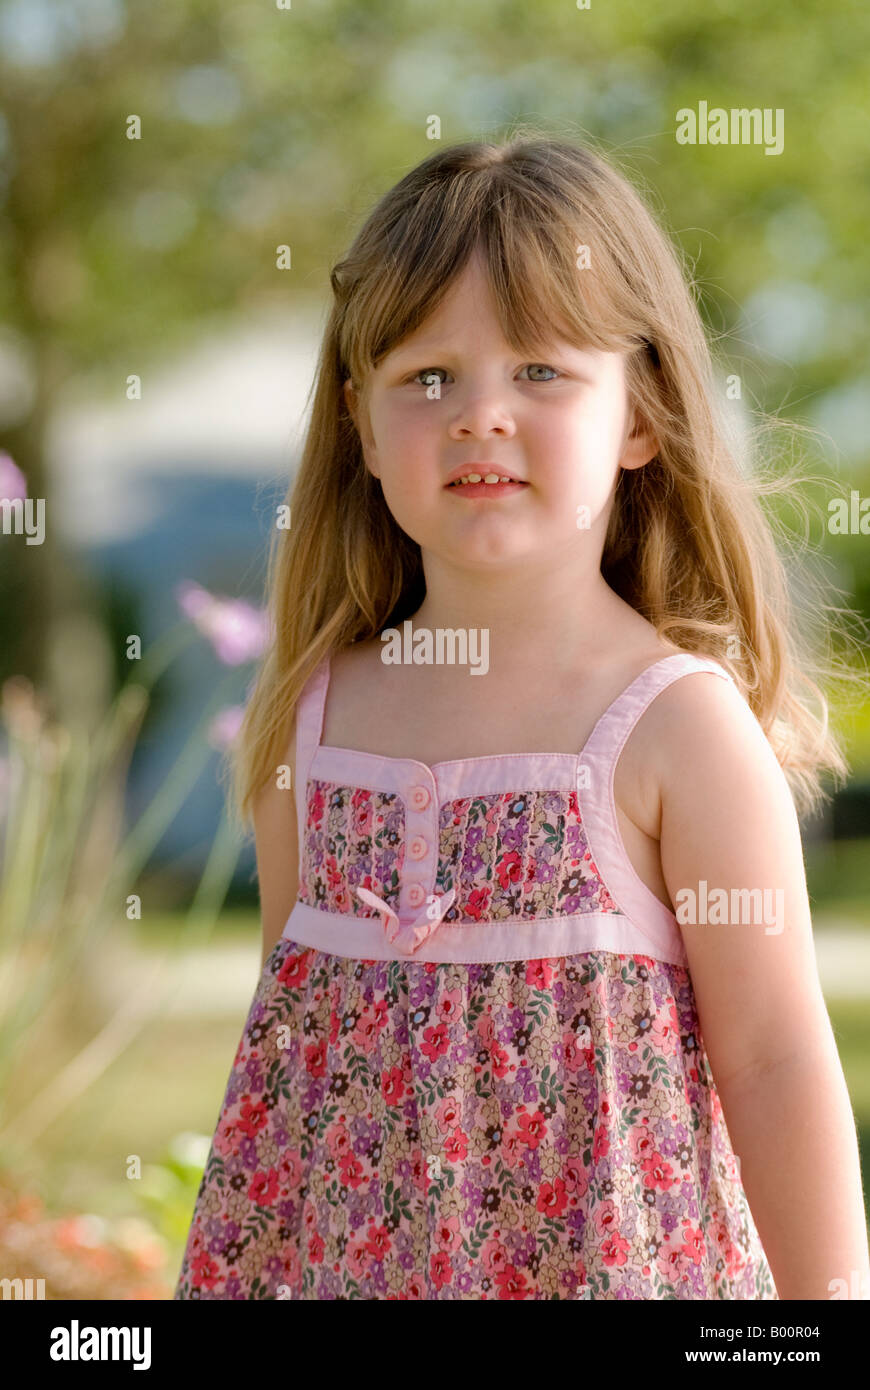 Four Year Two Year Community: 4 Year Old Little Girl In Park With Pensive Look Stock